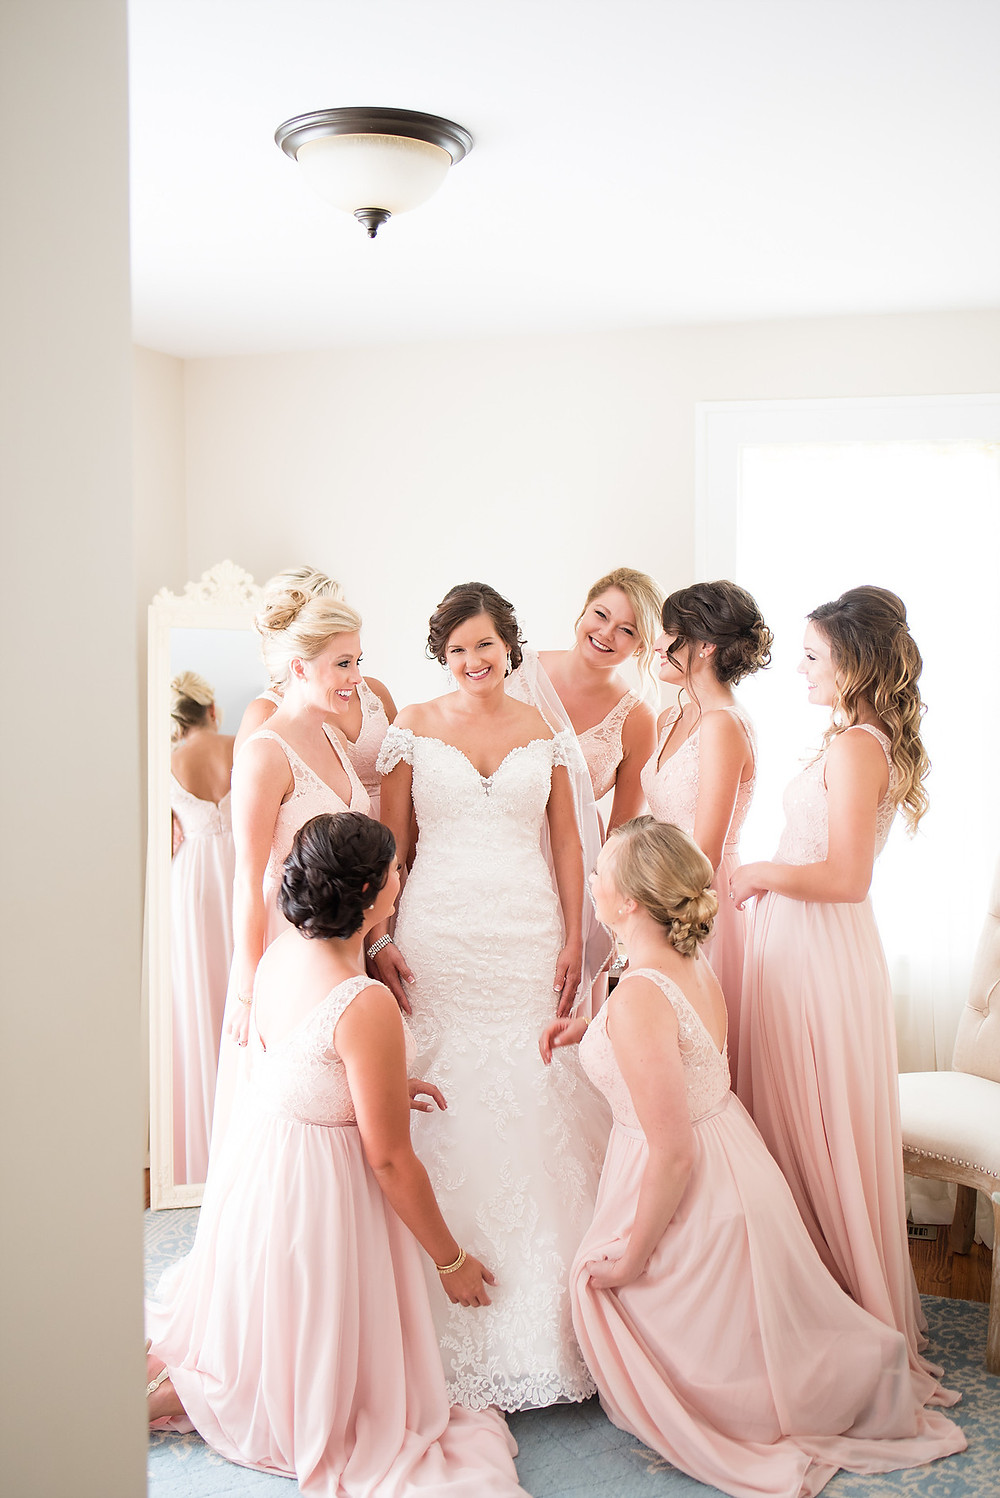 How-to-have-the-best-wedding-photos